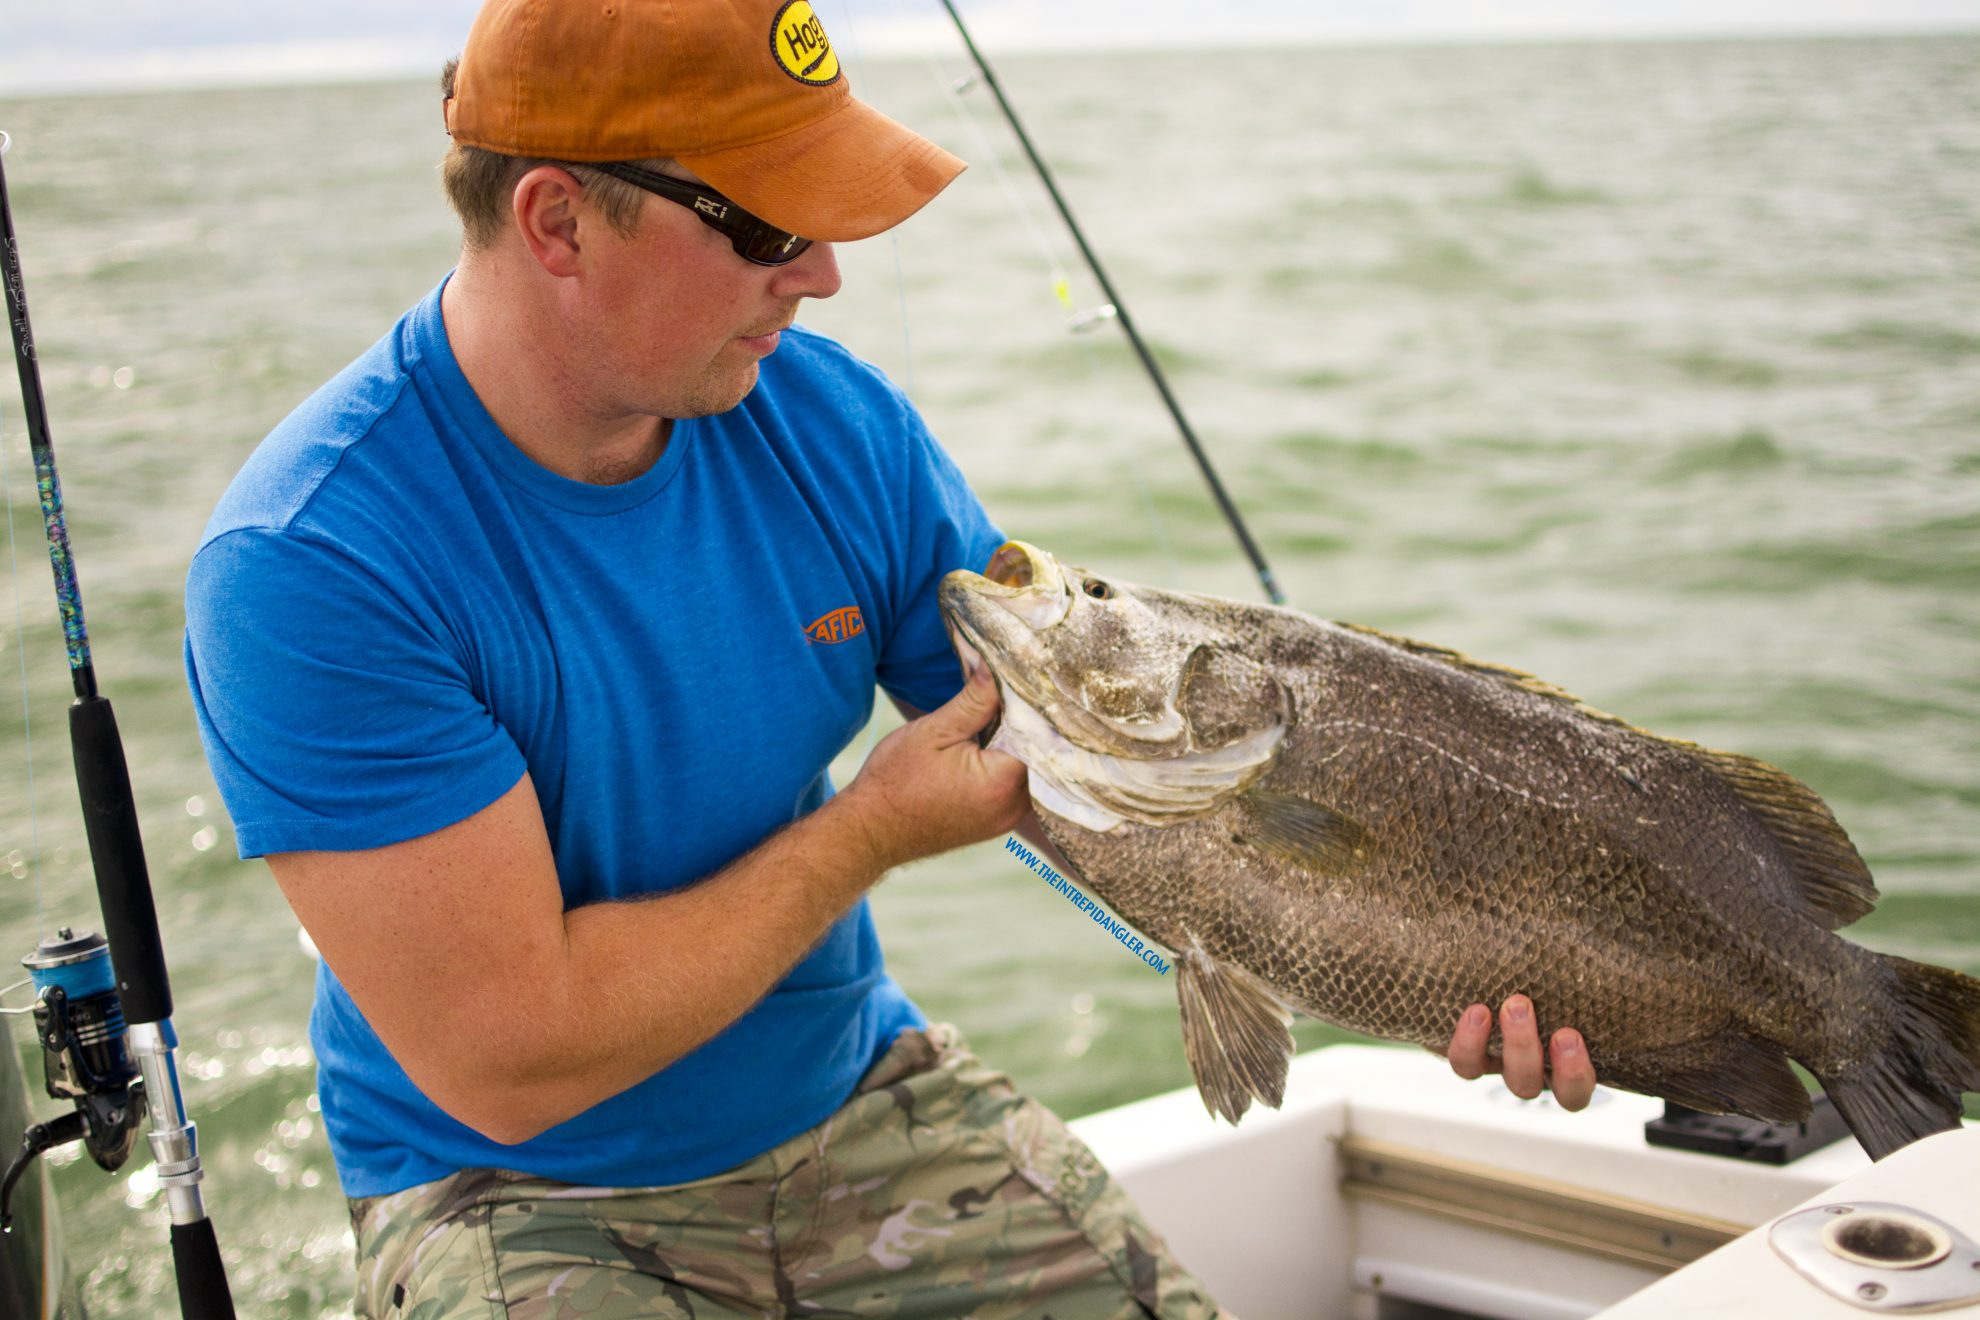 Canaveral-Tripletail-Aftco2-WM.jpg